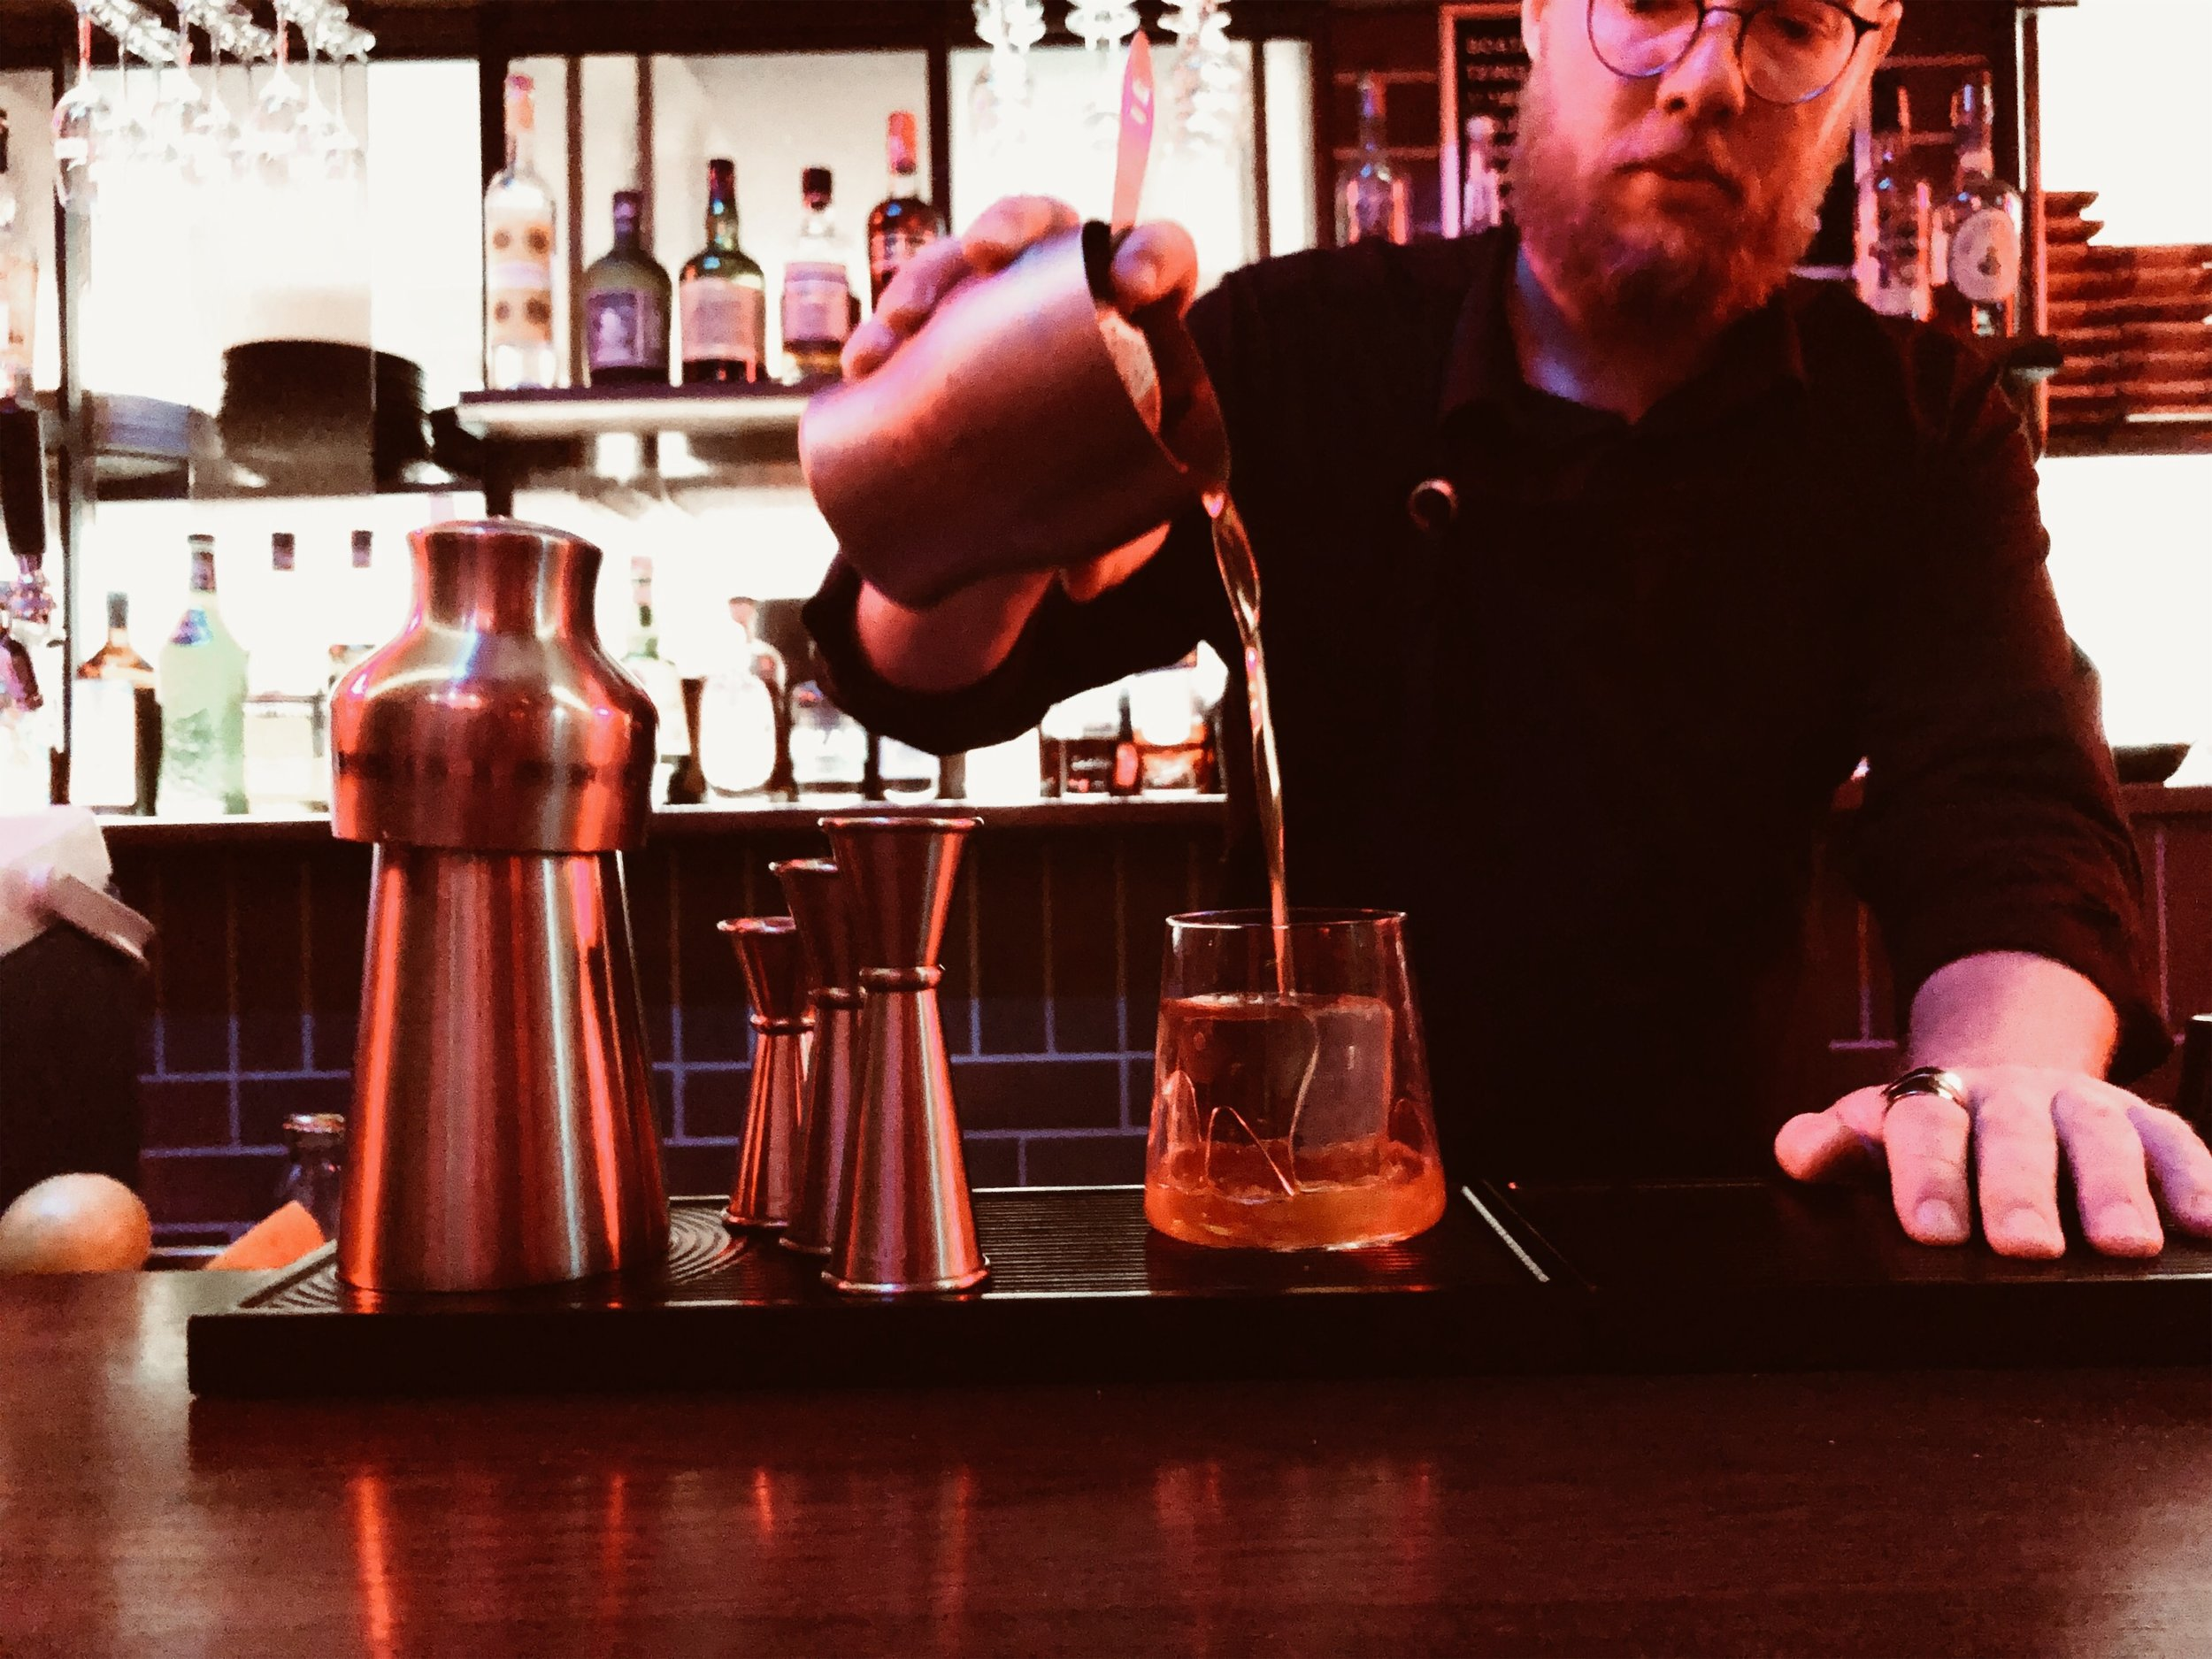 Meet Geoff - He's our barman, he makes nice drinks.You might recognise him from Boilermaker House or Lui Bar… Whisky aficionado and cocktail nerd. His twists on classics makes Good Luck signature cocktails to die for.